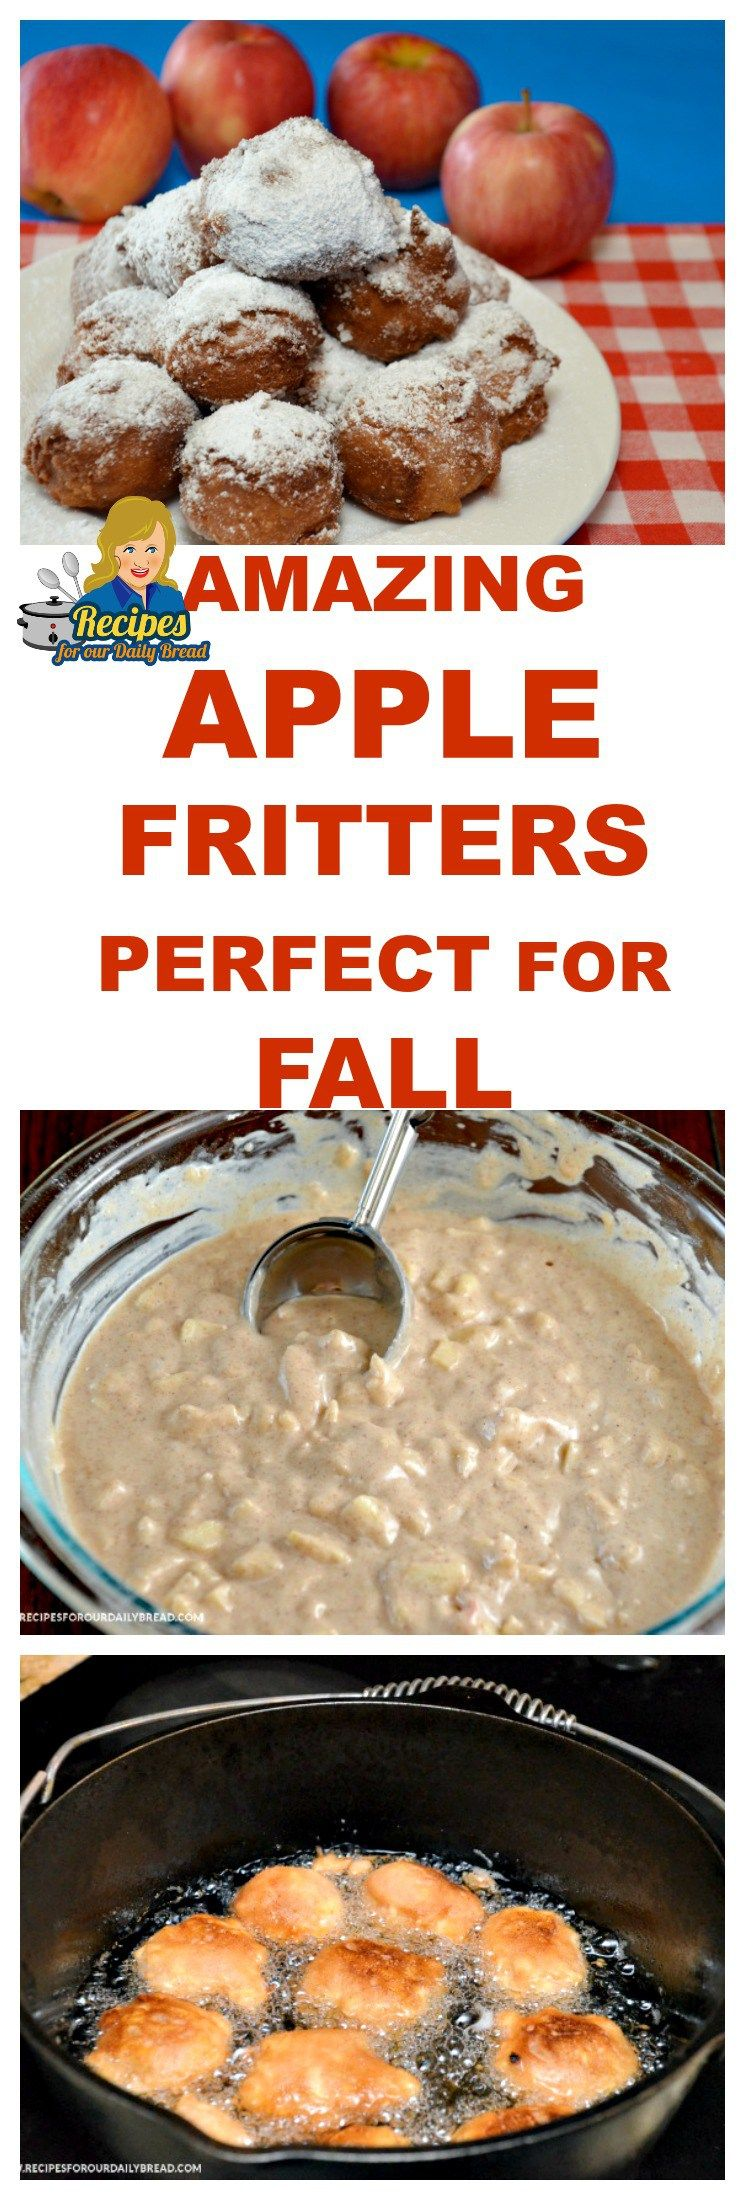 AMAZING APPLE FRITTERS PERFECT FOR FALL  PRINT RECIPE HERE: http://recipesforourdailybread.com/best-apple-fritters-tn/ (Apple Recipes)